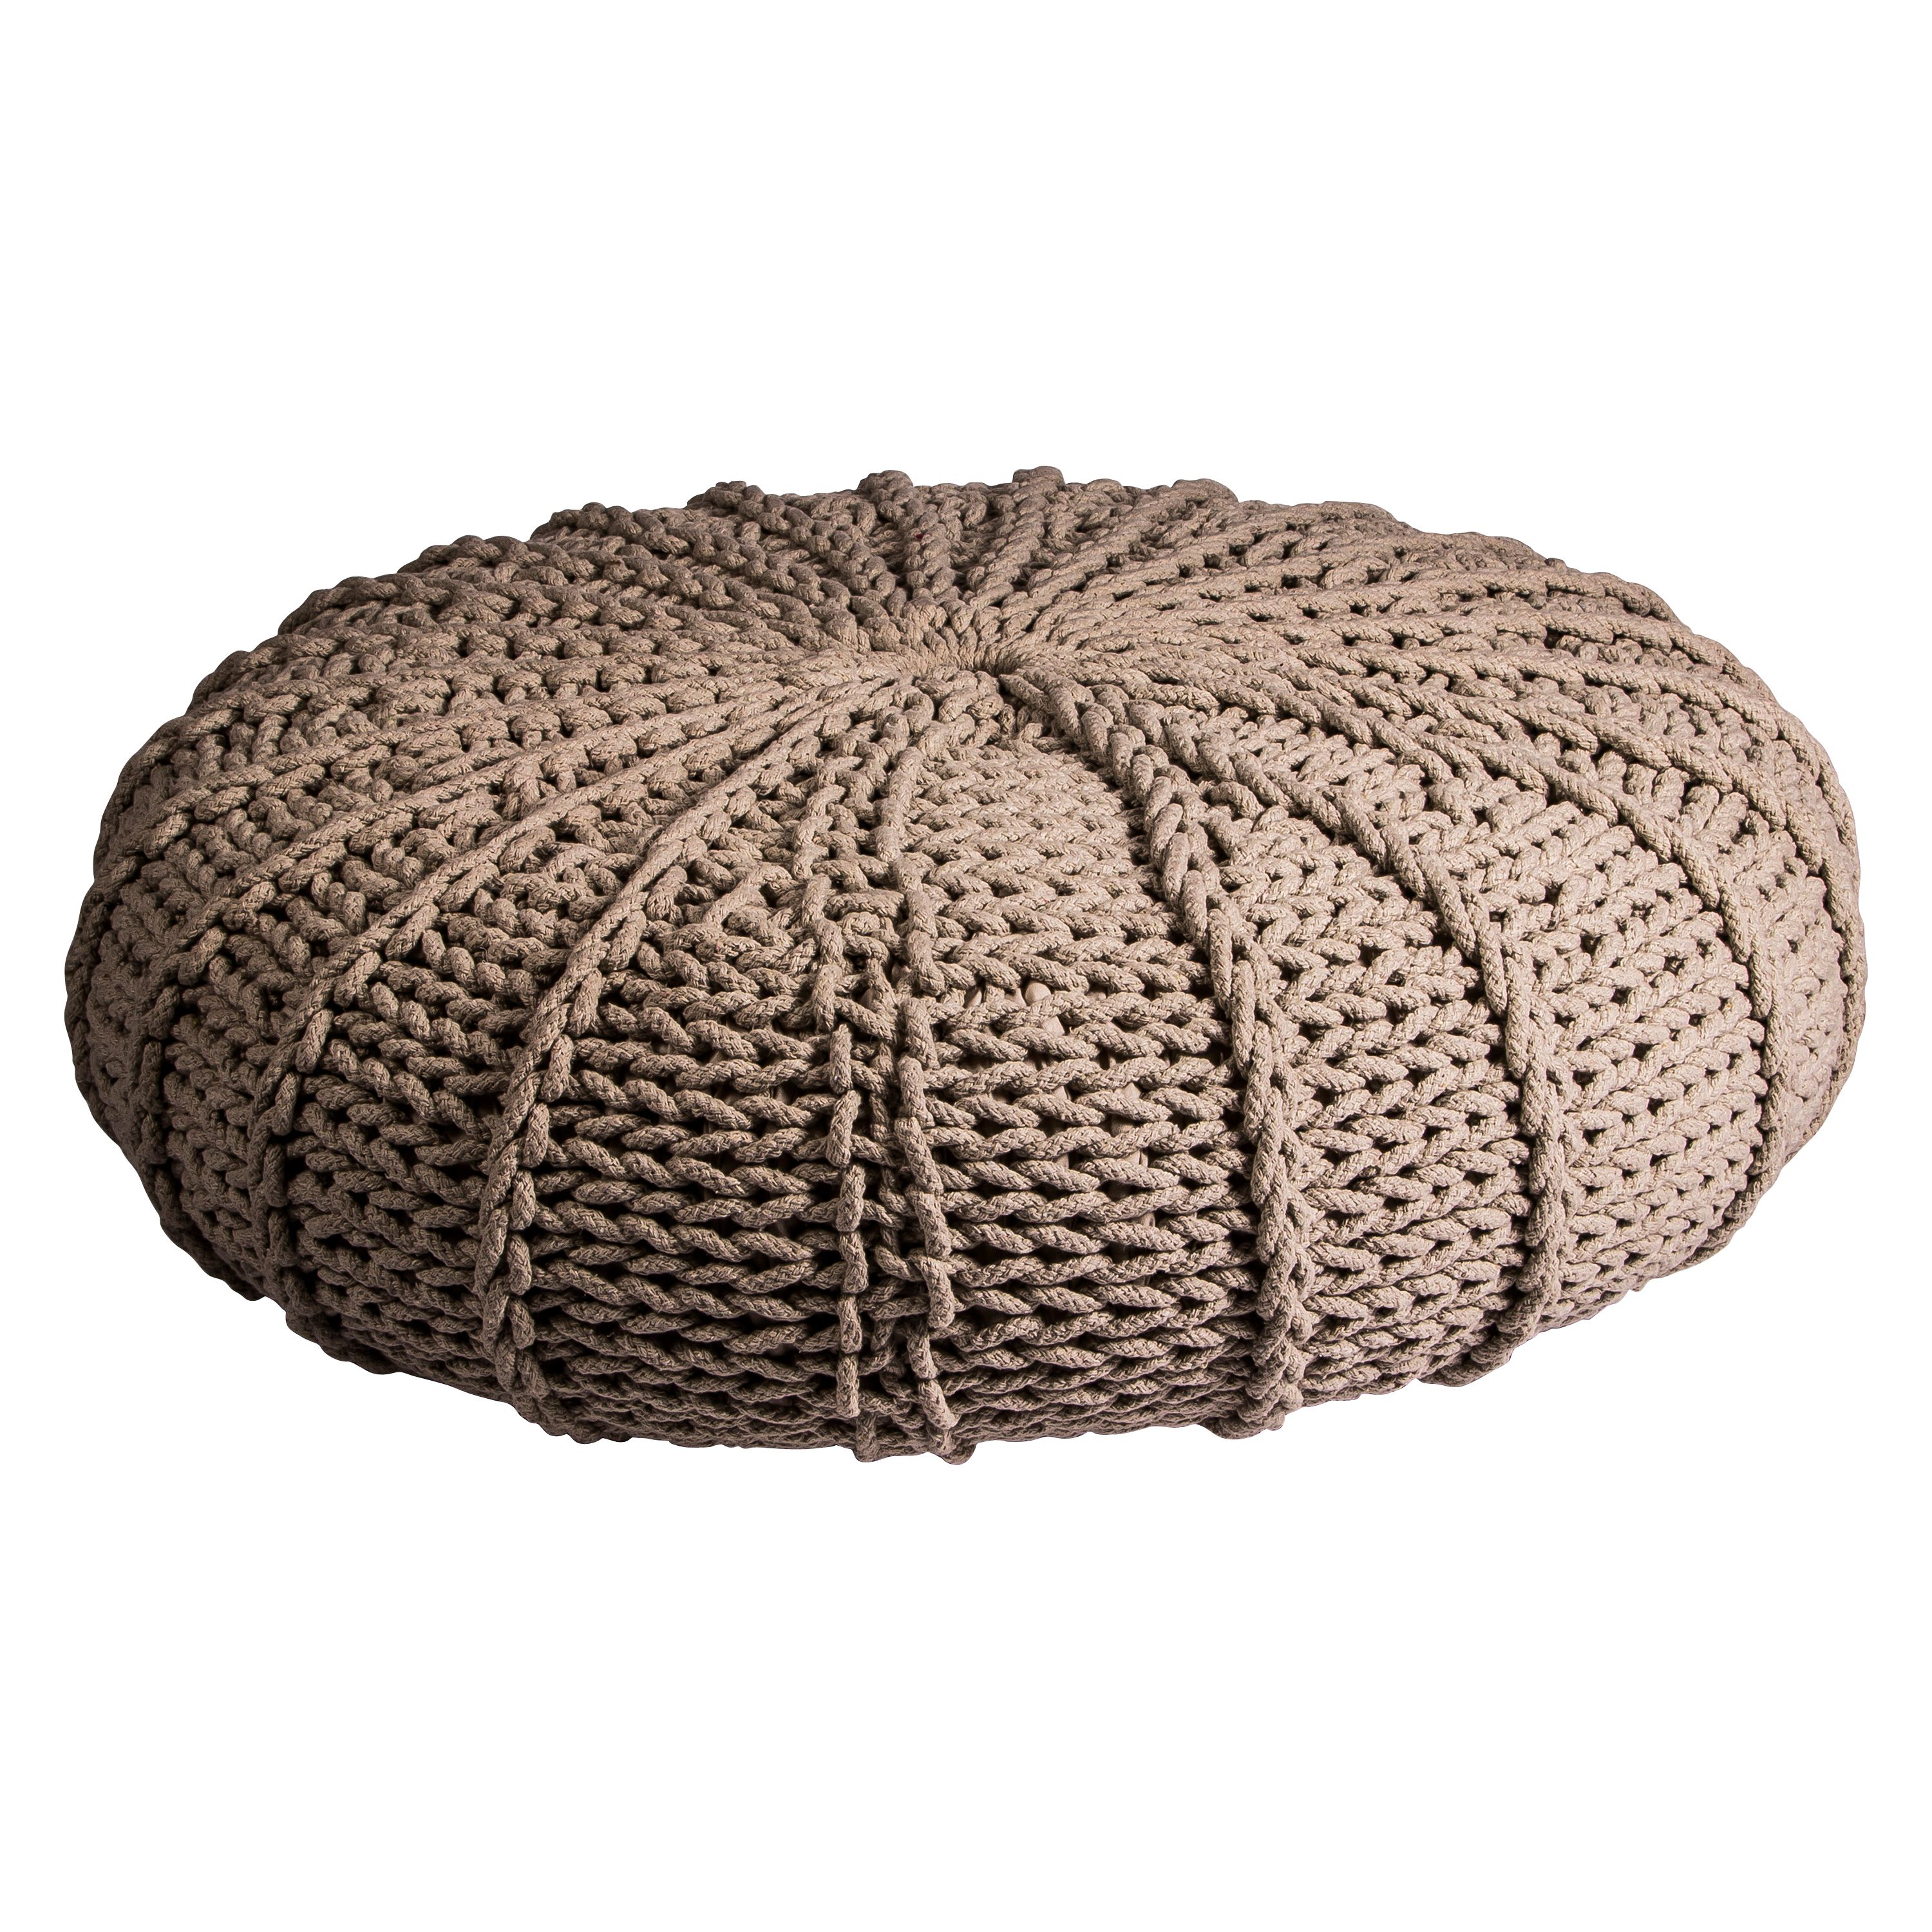 Pouf with cotton/poly filling in ivory 85x23cm